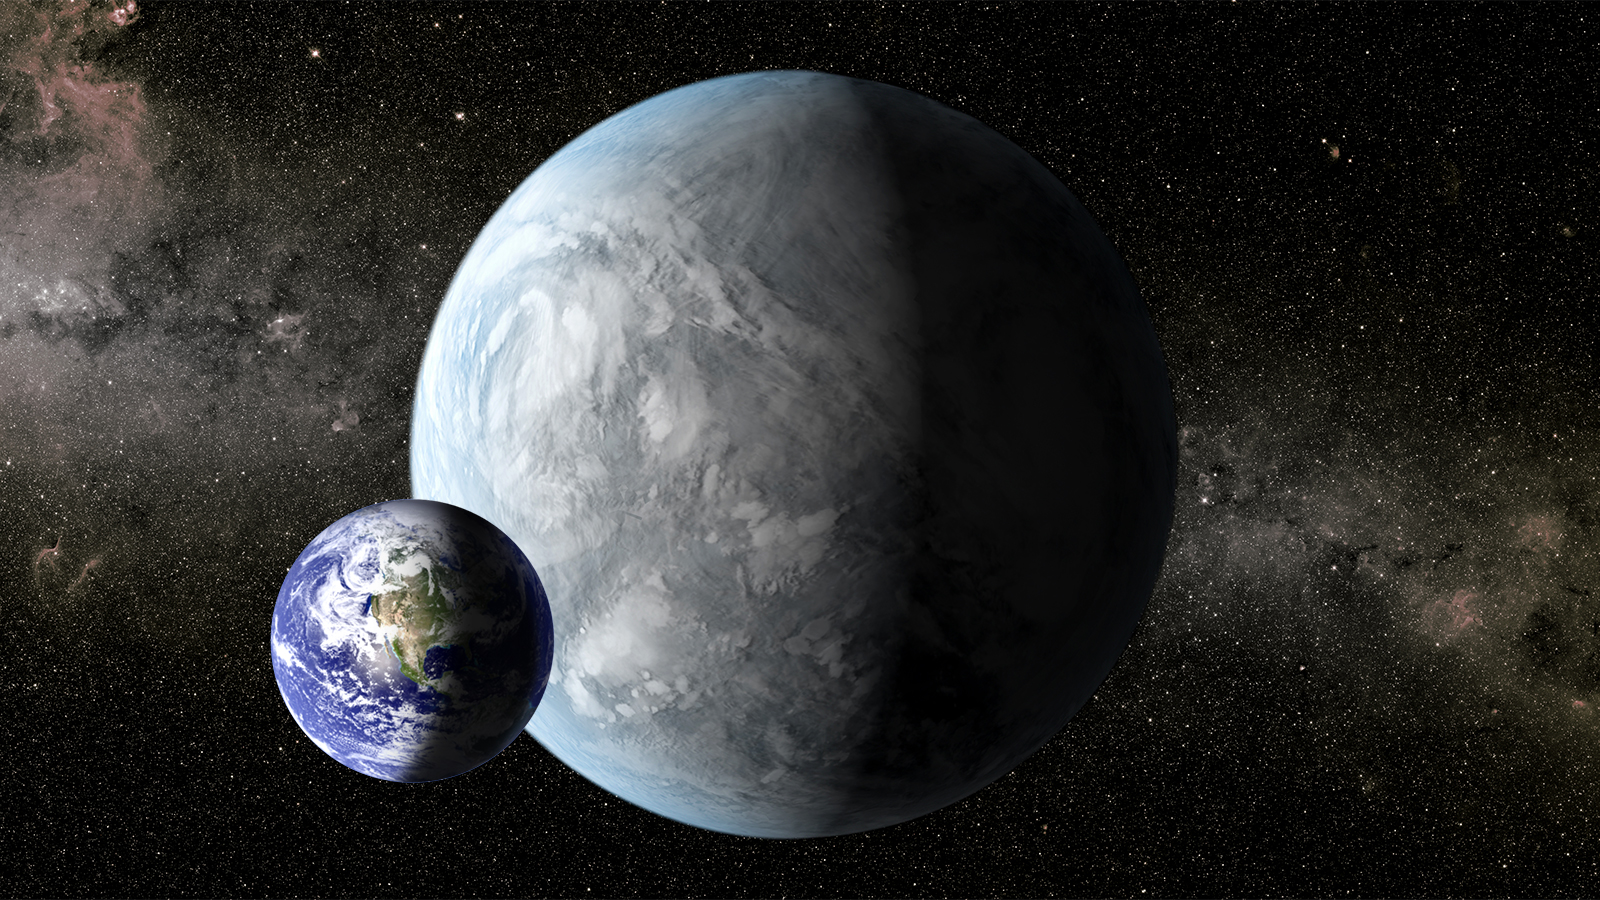 Astronomers super earths have oceans and continents just like earth